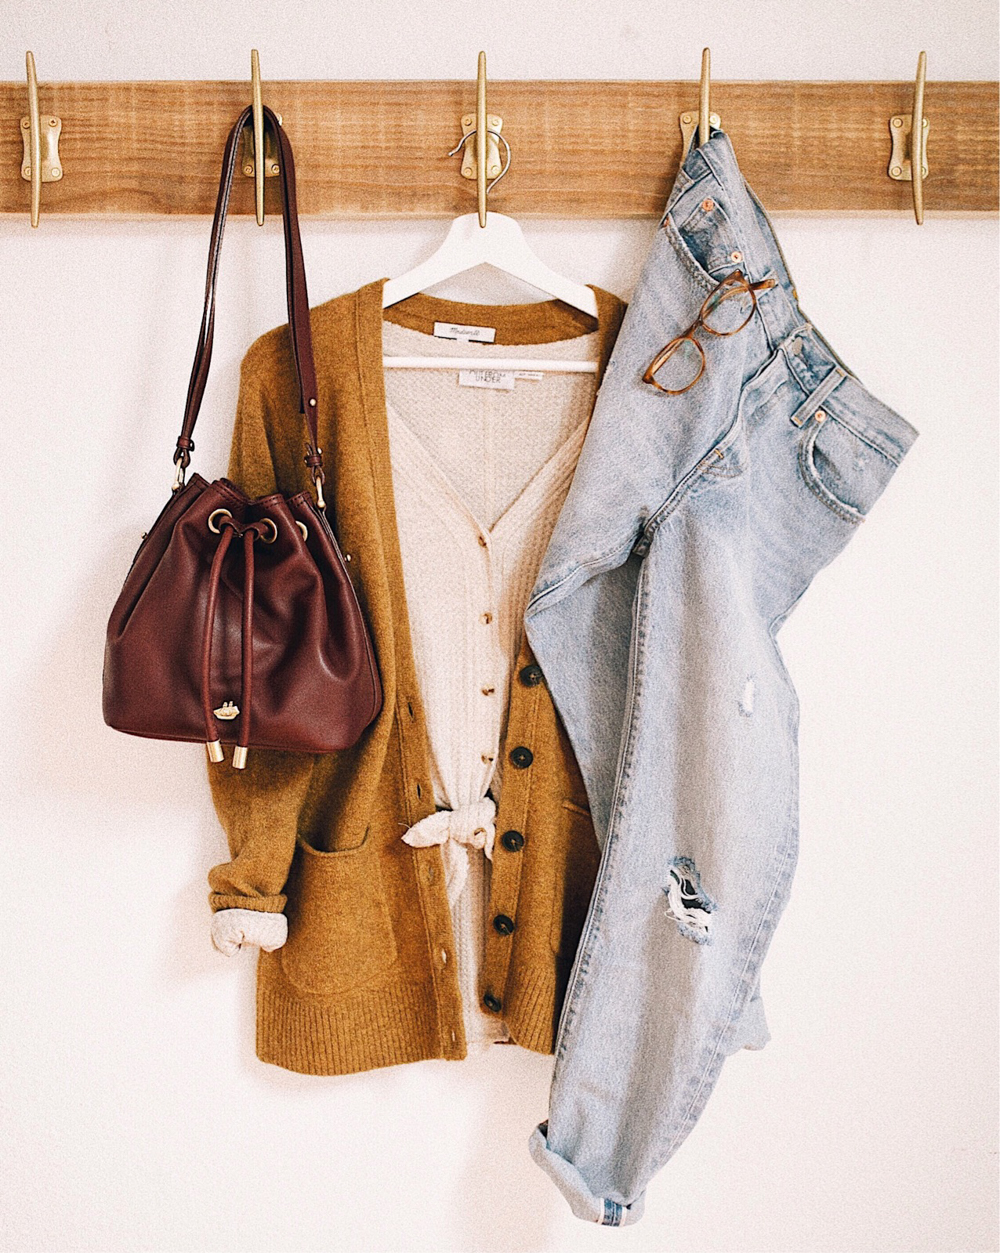 livvyland-blog-olivia-watson-fall-outfit-idea-grandpa-cardigan-thermal-top-levis-501-jeans-brahmin-handbag